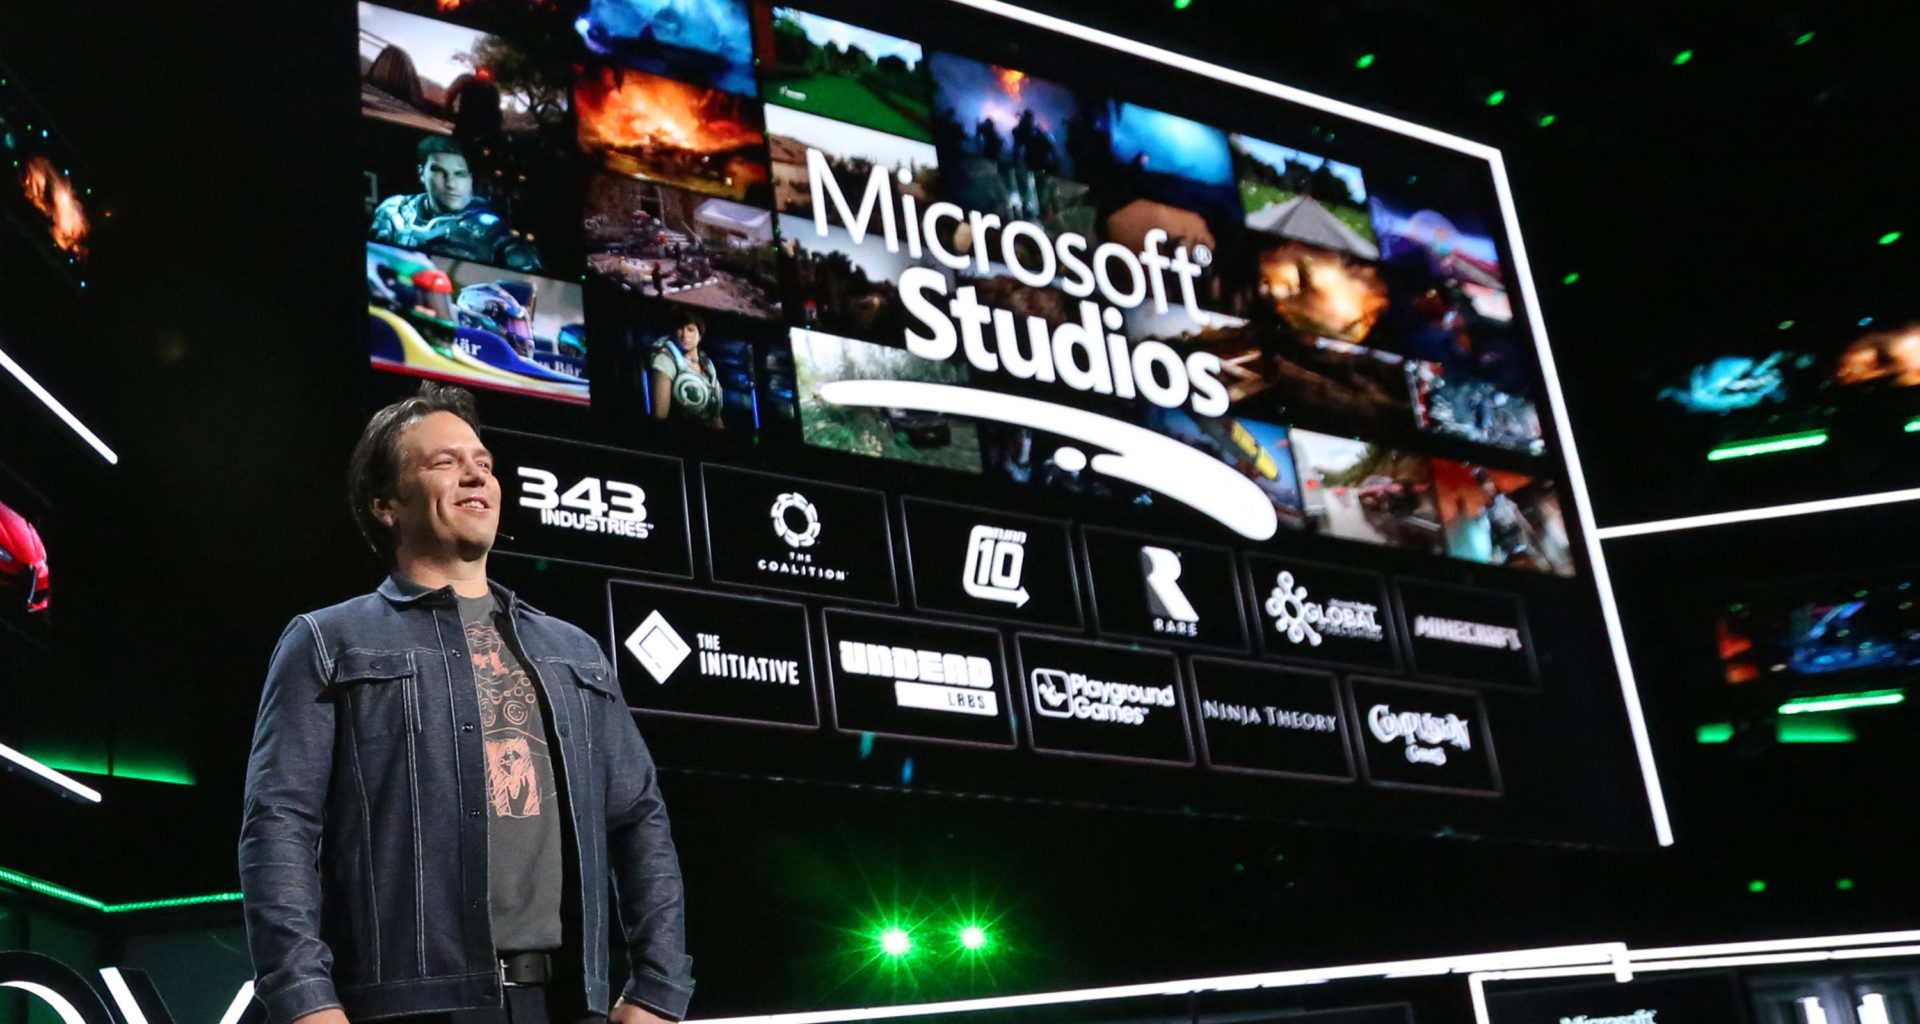 Microsoft is planning category specific events of gaming, cloud and Windows soon